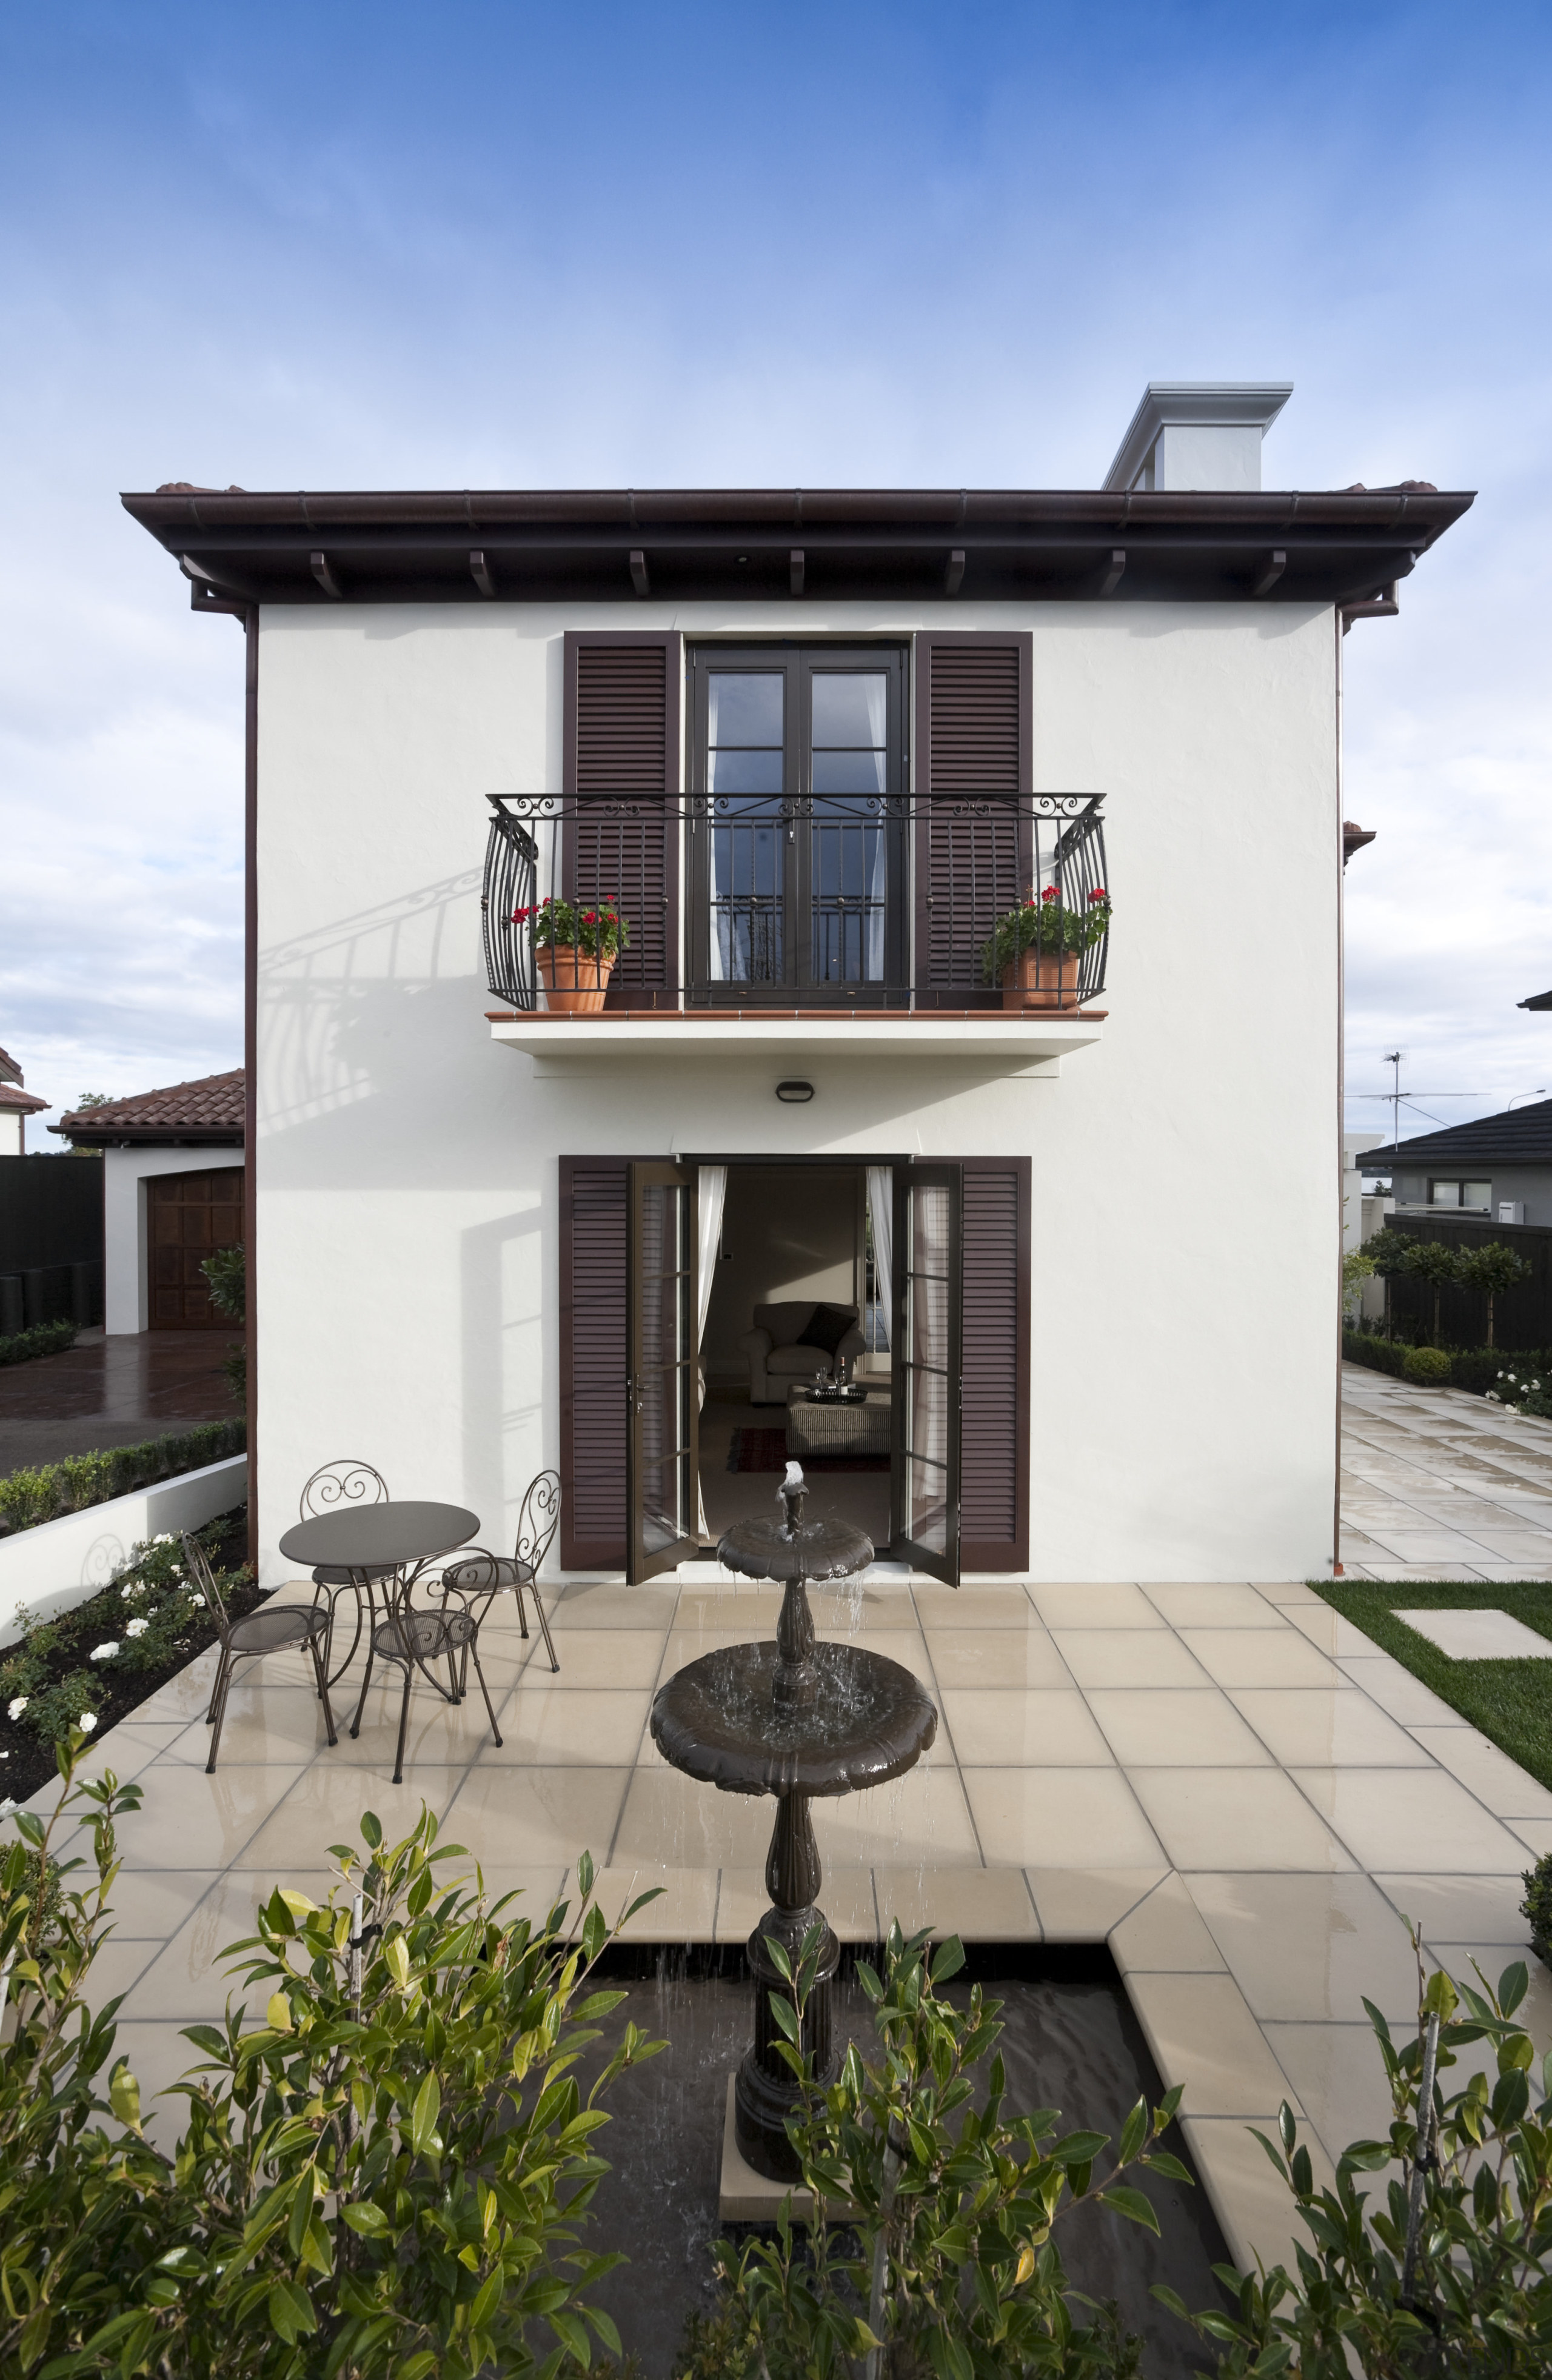 Exterior view of Eden Homes show home which architecture, building, facade, home, house, real estate, residential area, gray